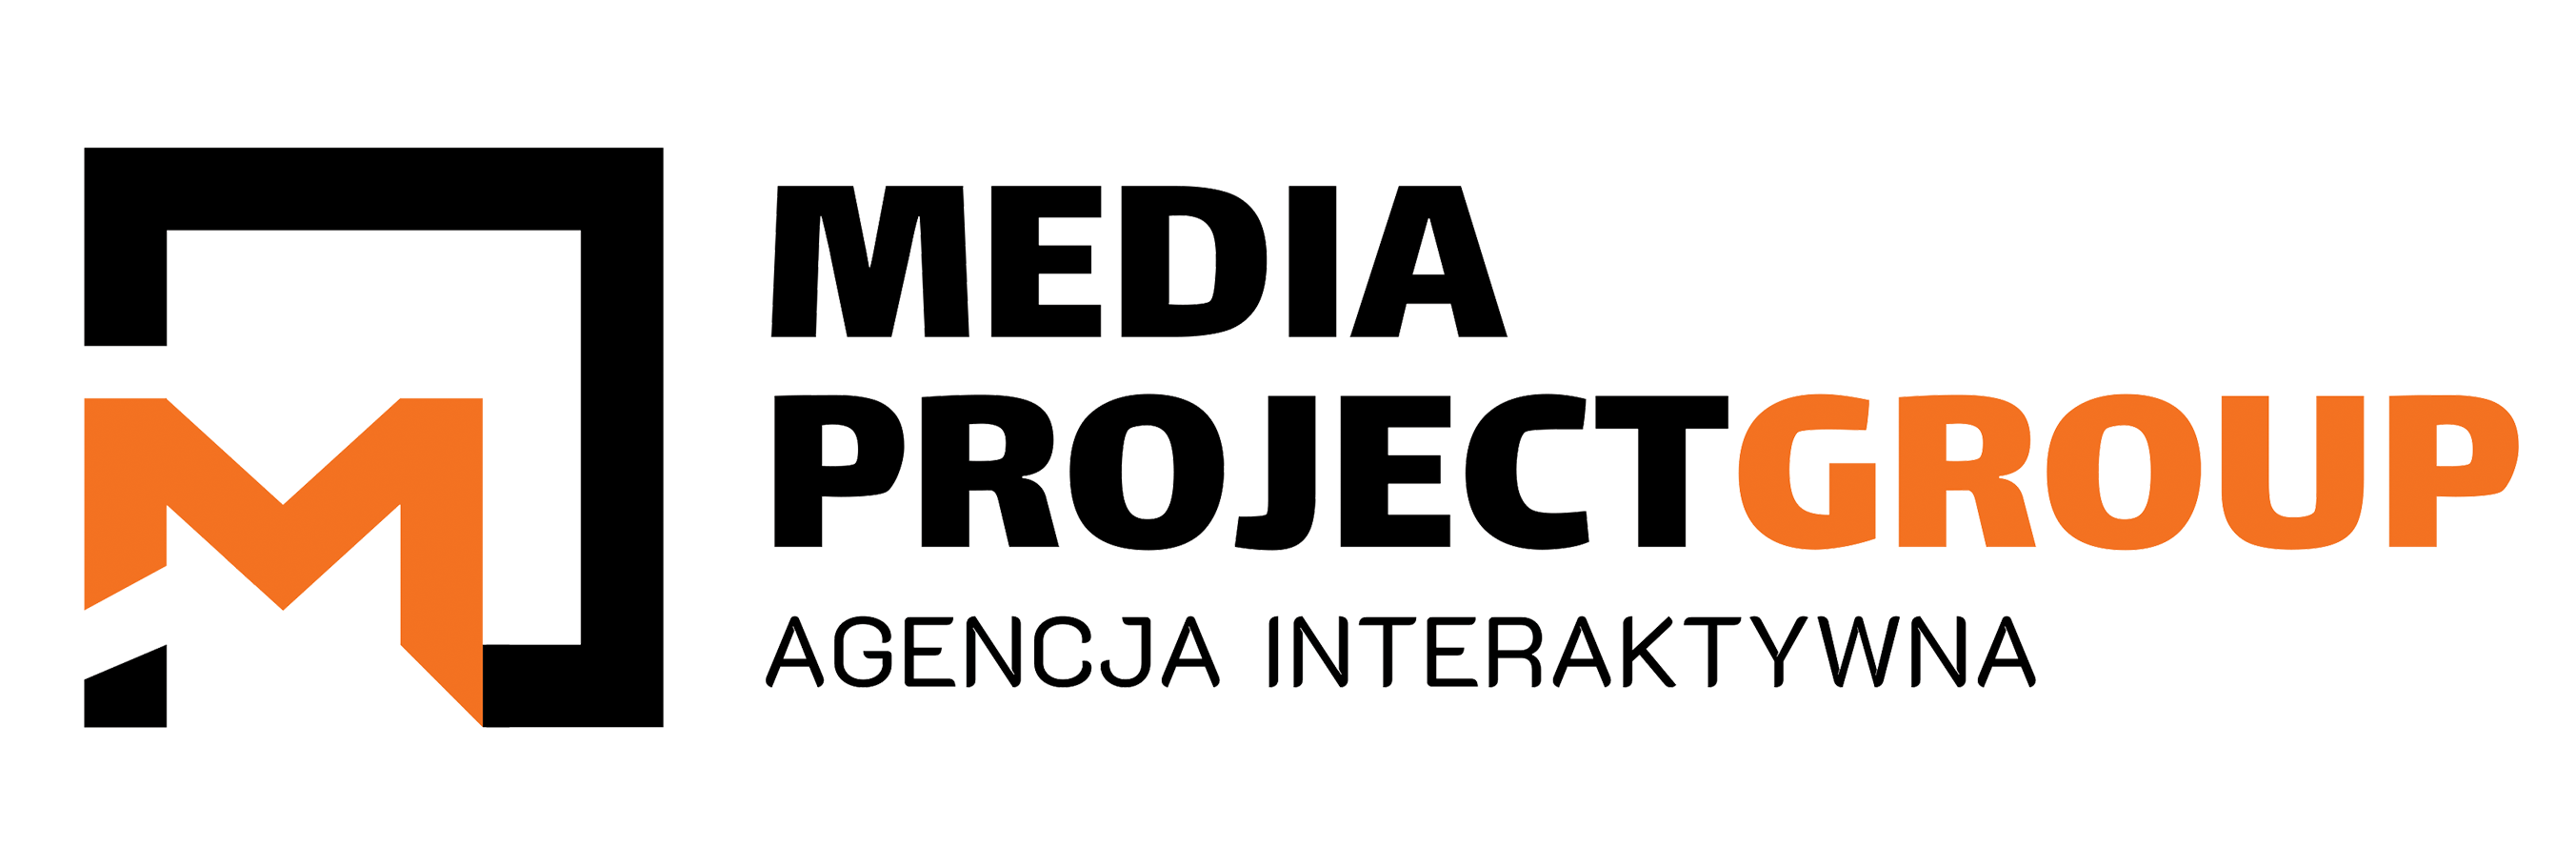 Agencja interaktywna Media Project Group